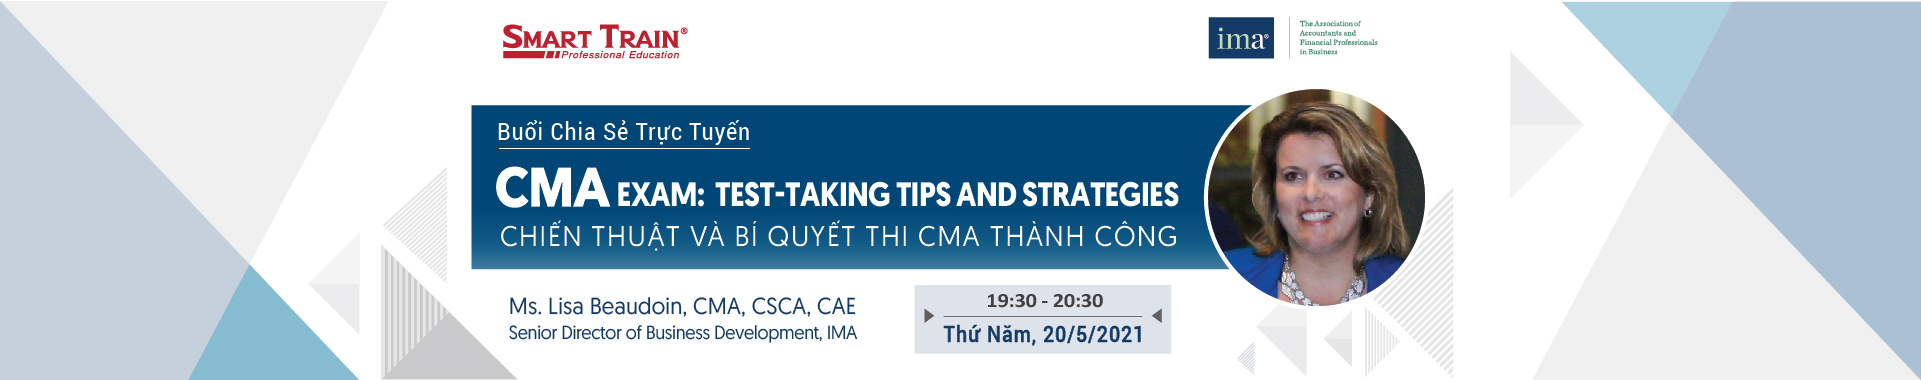 CMA- EXAM Test-Taking Tips and Strategies_eb